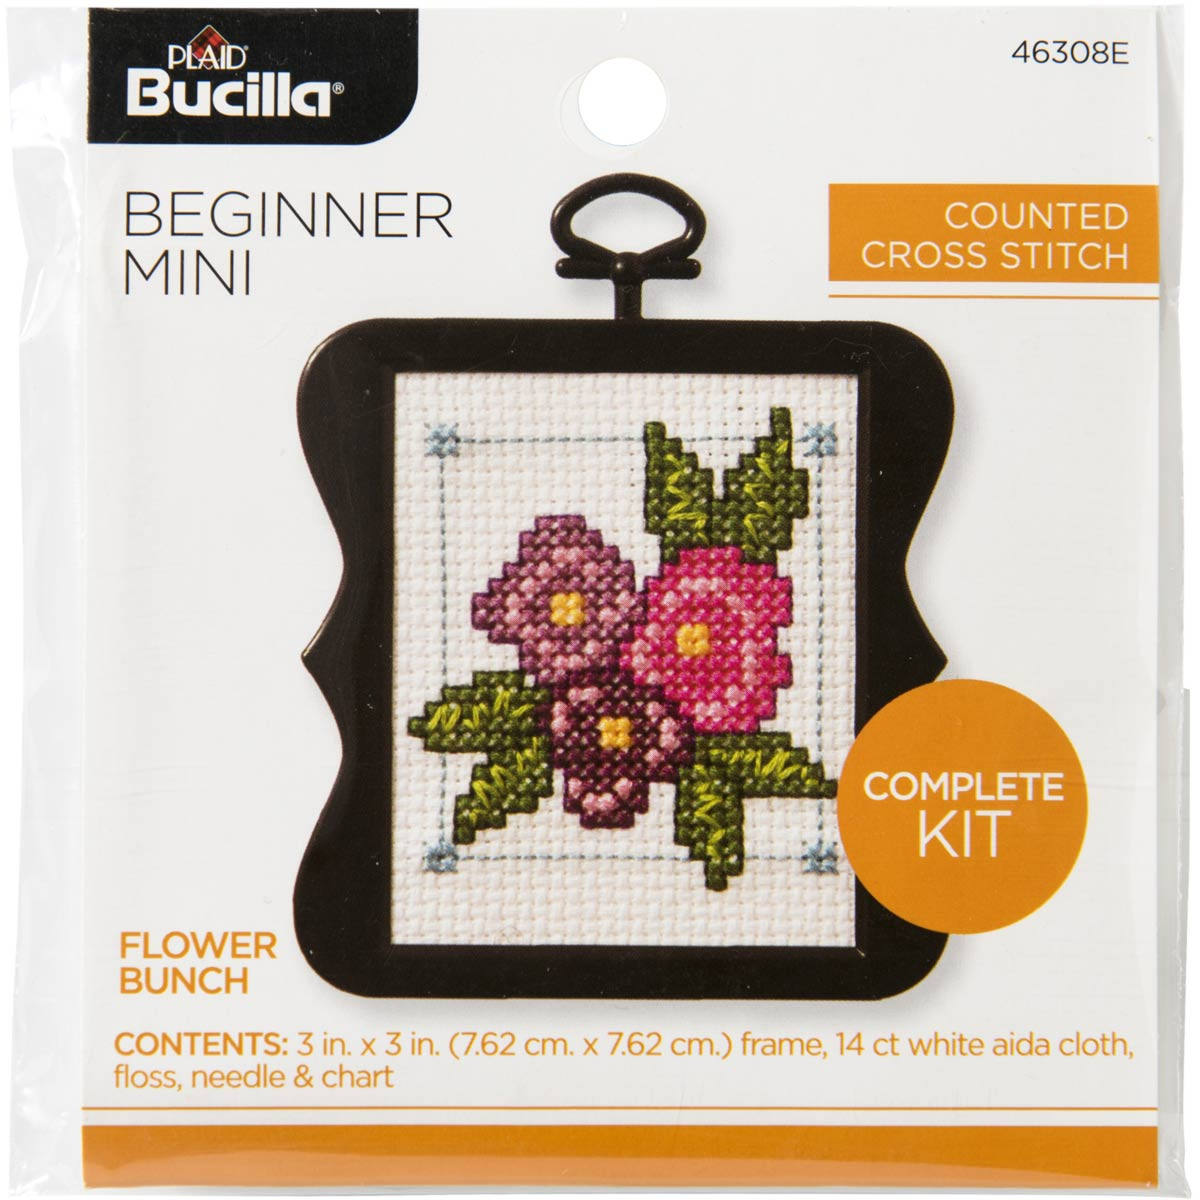 Bucilla ® Counted Cross Stitch - Beginner Stitchery - Mini - Flower Bunch